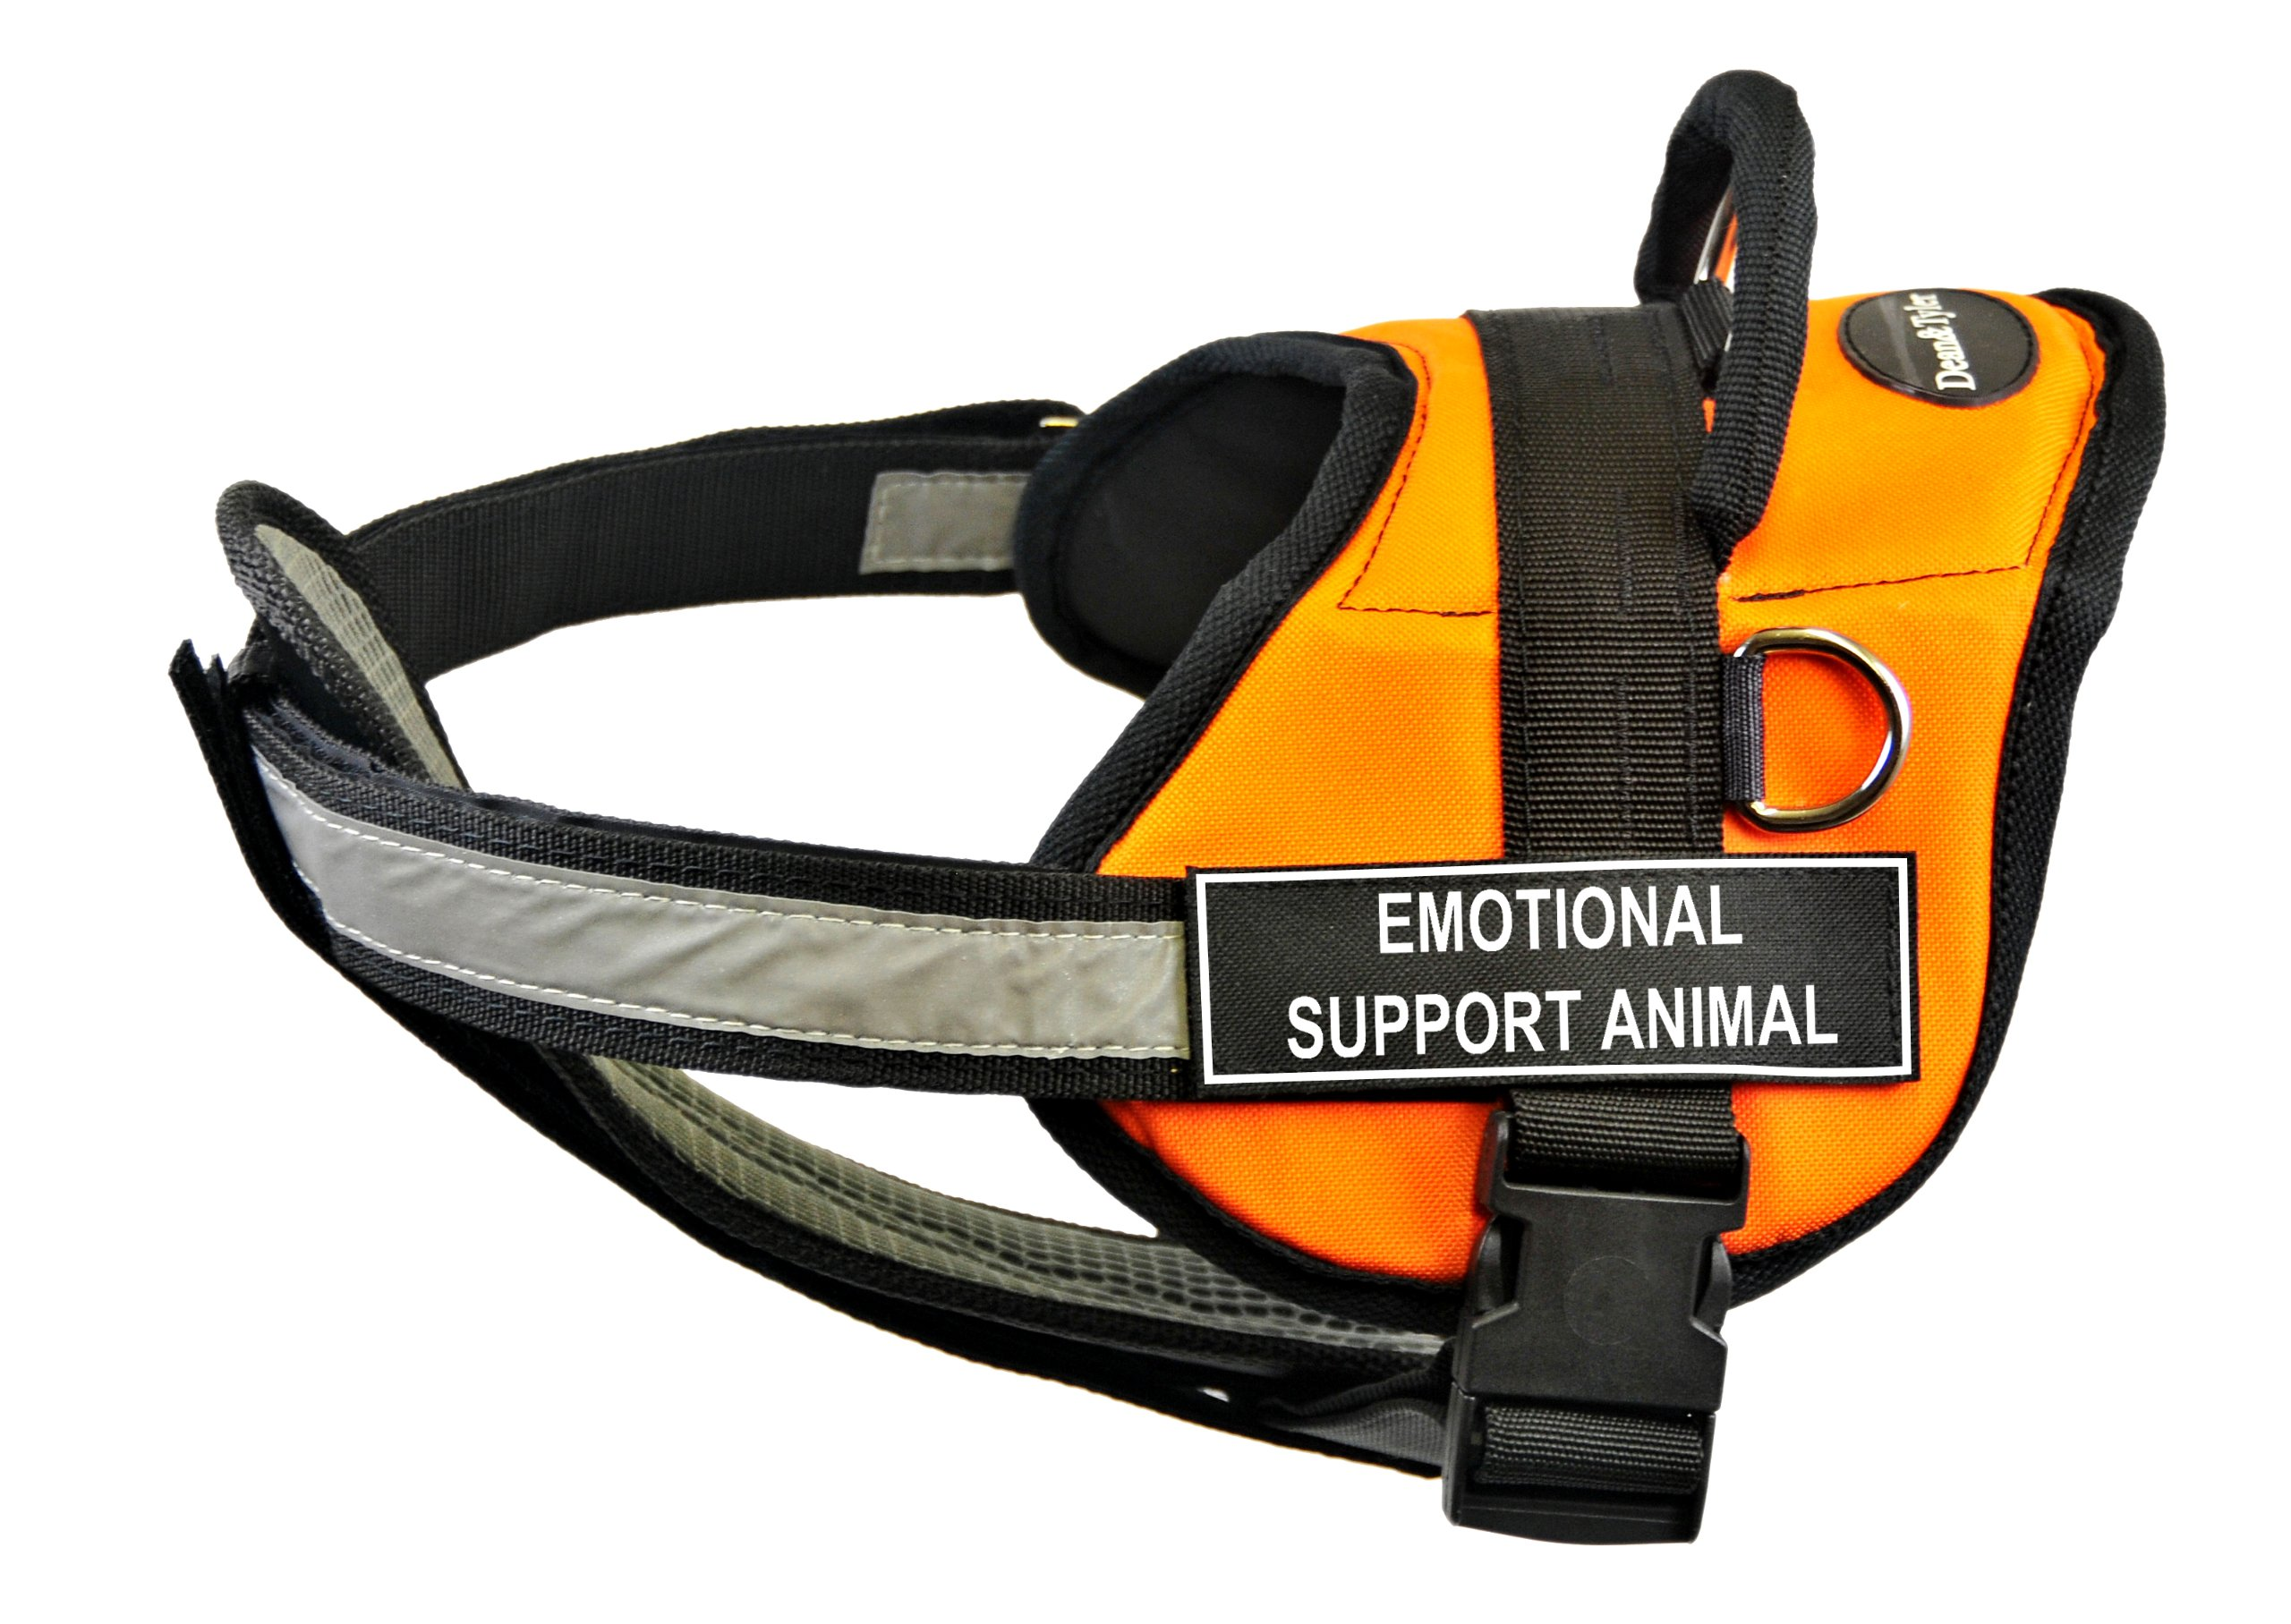 Dean & Tyler 28-Inch to 38-Inch Emotional Support Animal Dog Harness with Padded Reflective Chest Straps, Medium, Orange/Black